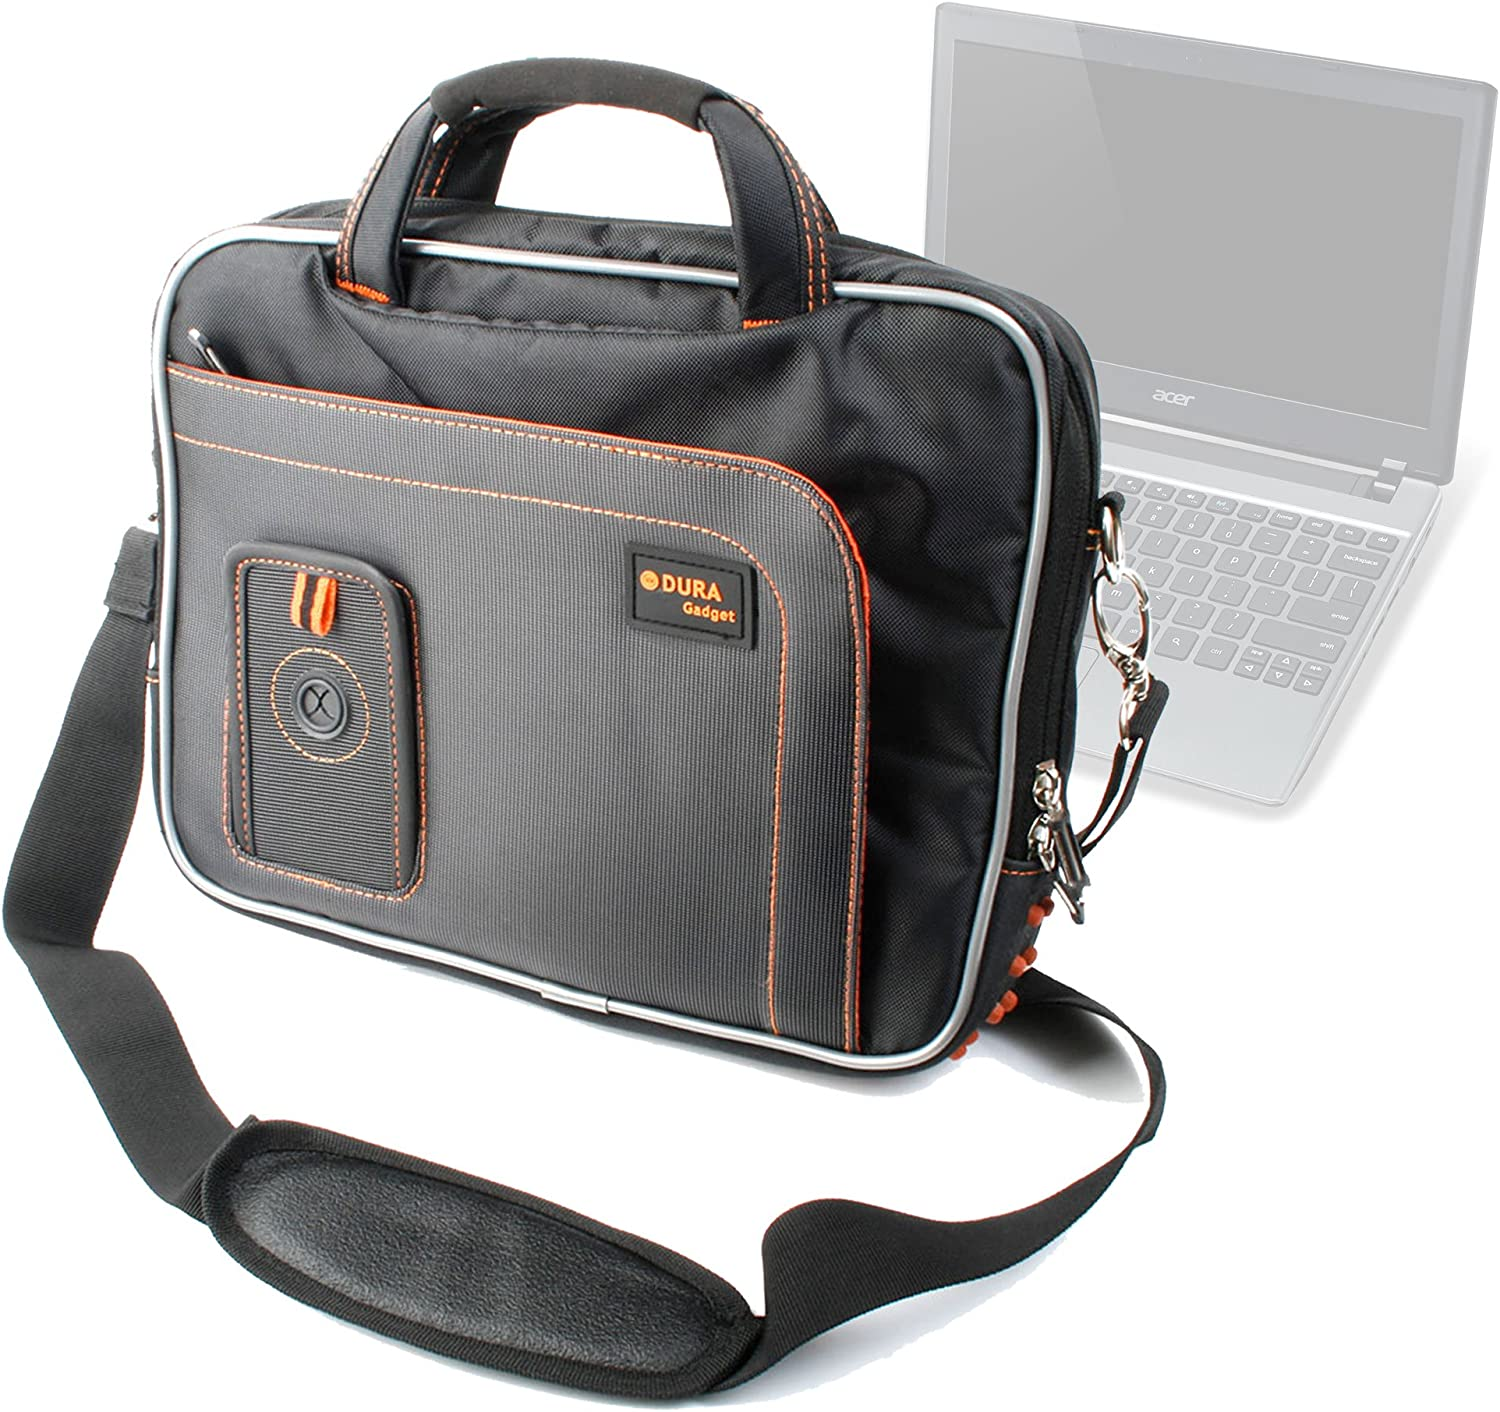 DURAGADGET Black Laptop Bag Shoulder Strap Case for Acer Chromebook Series C7 & Acer C720 Chromebook